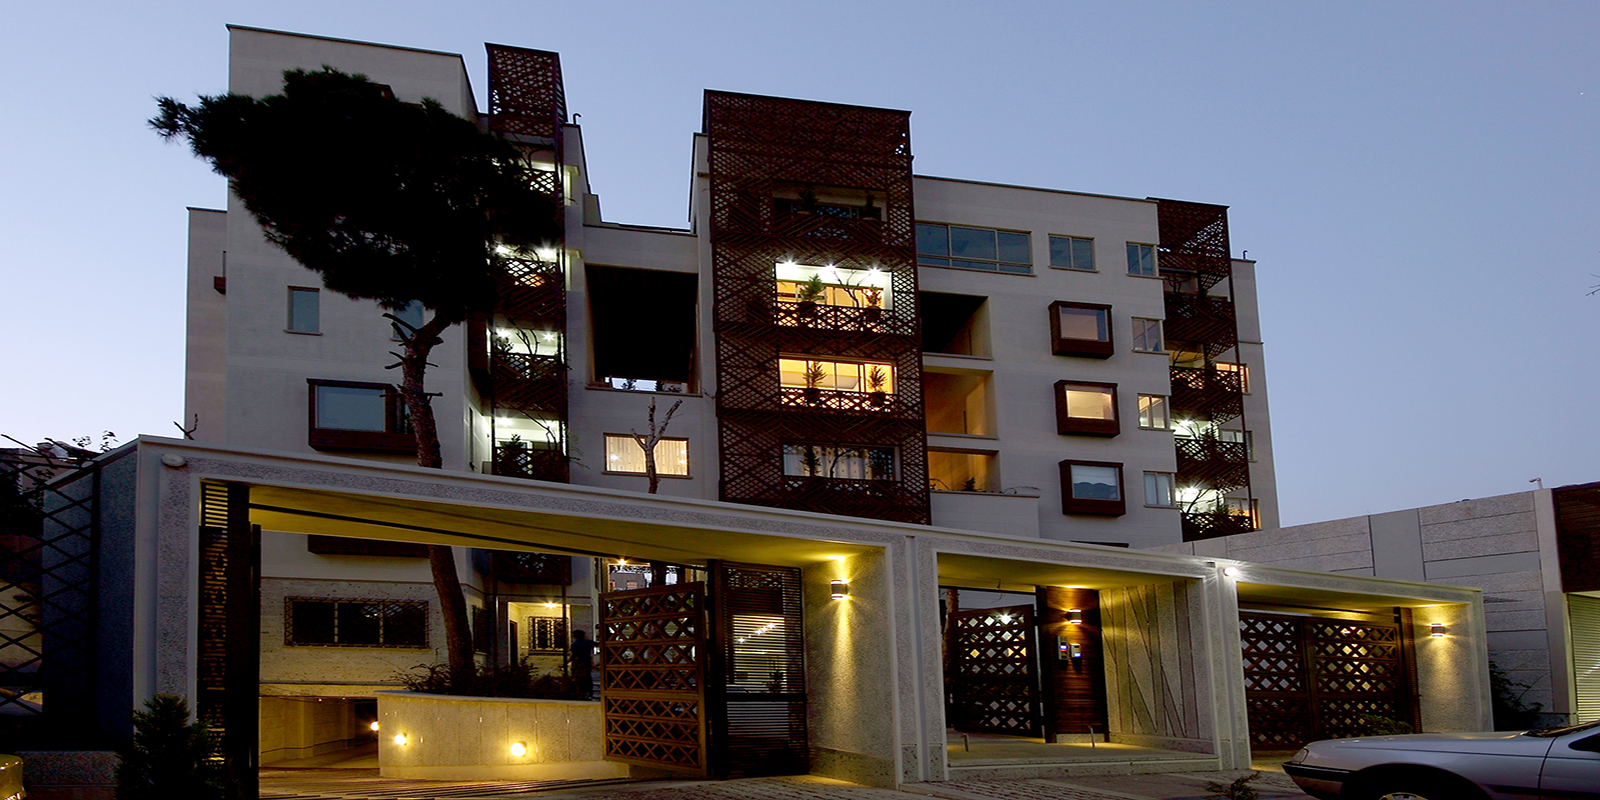 Bagh Vanak Residential Building - Shortlisted WAF 2010